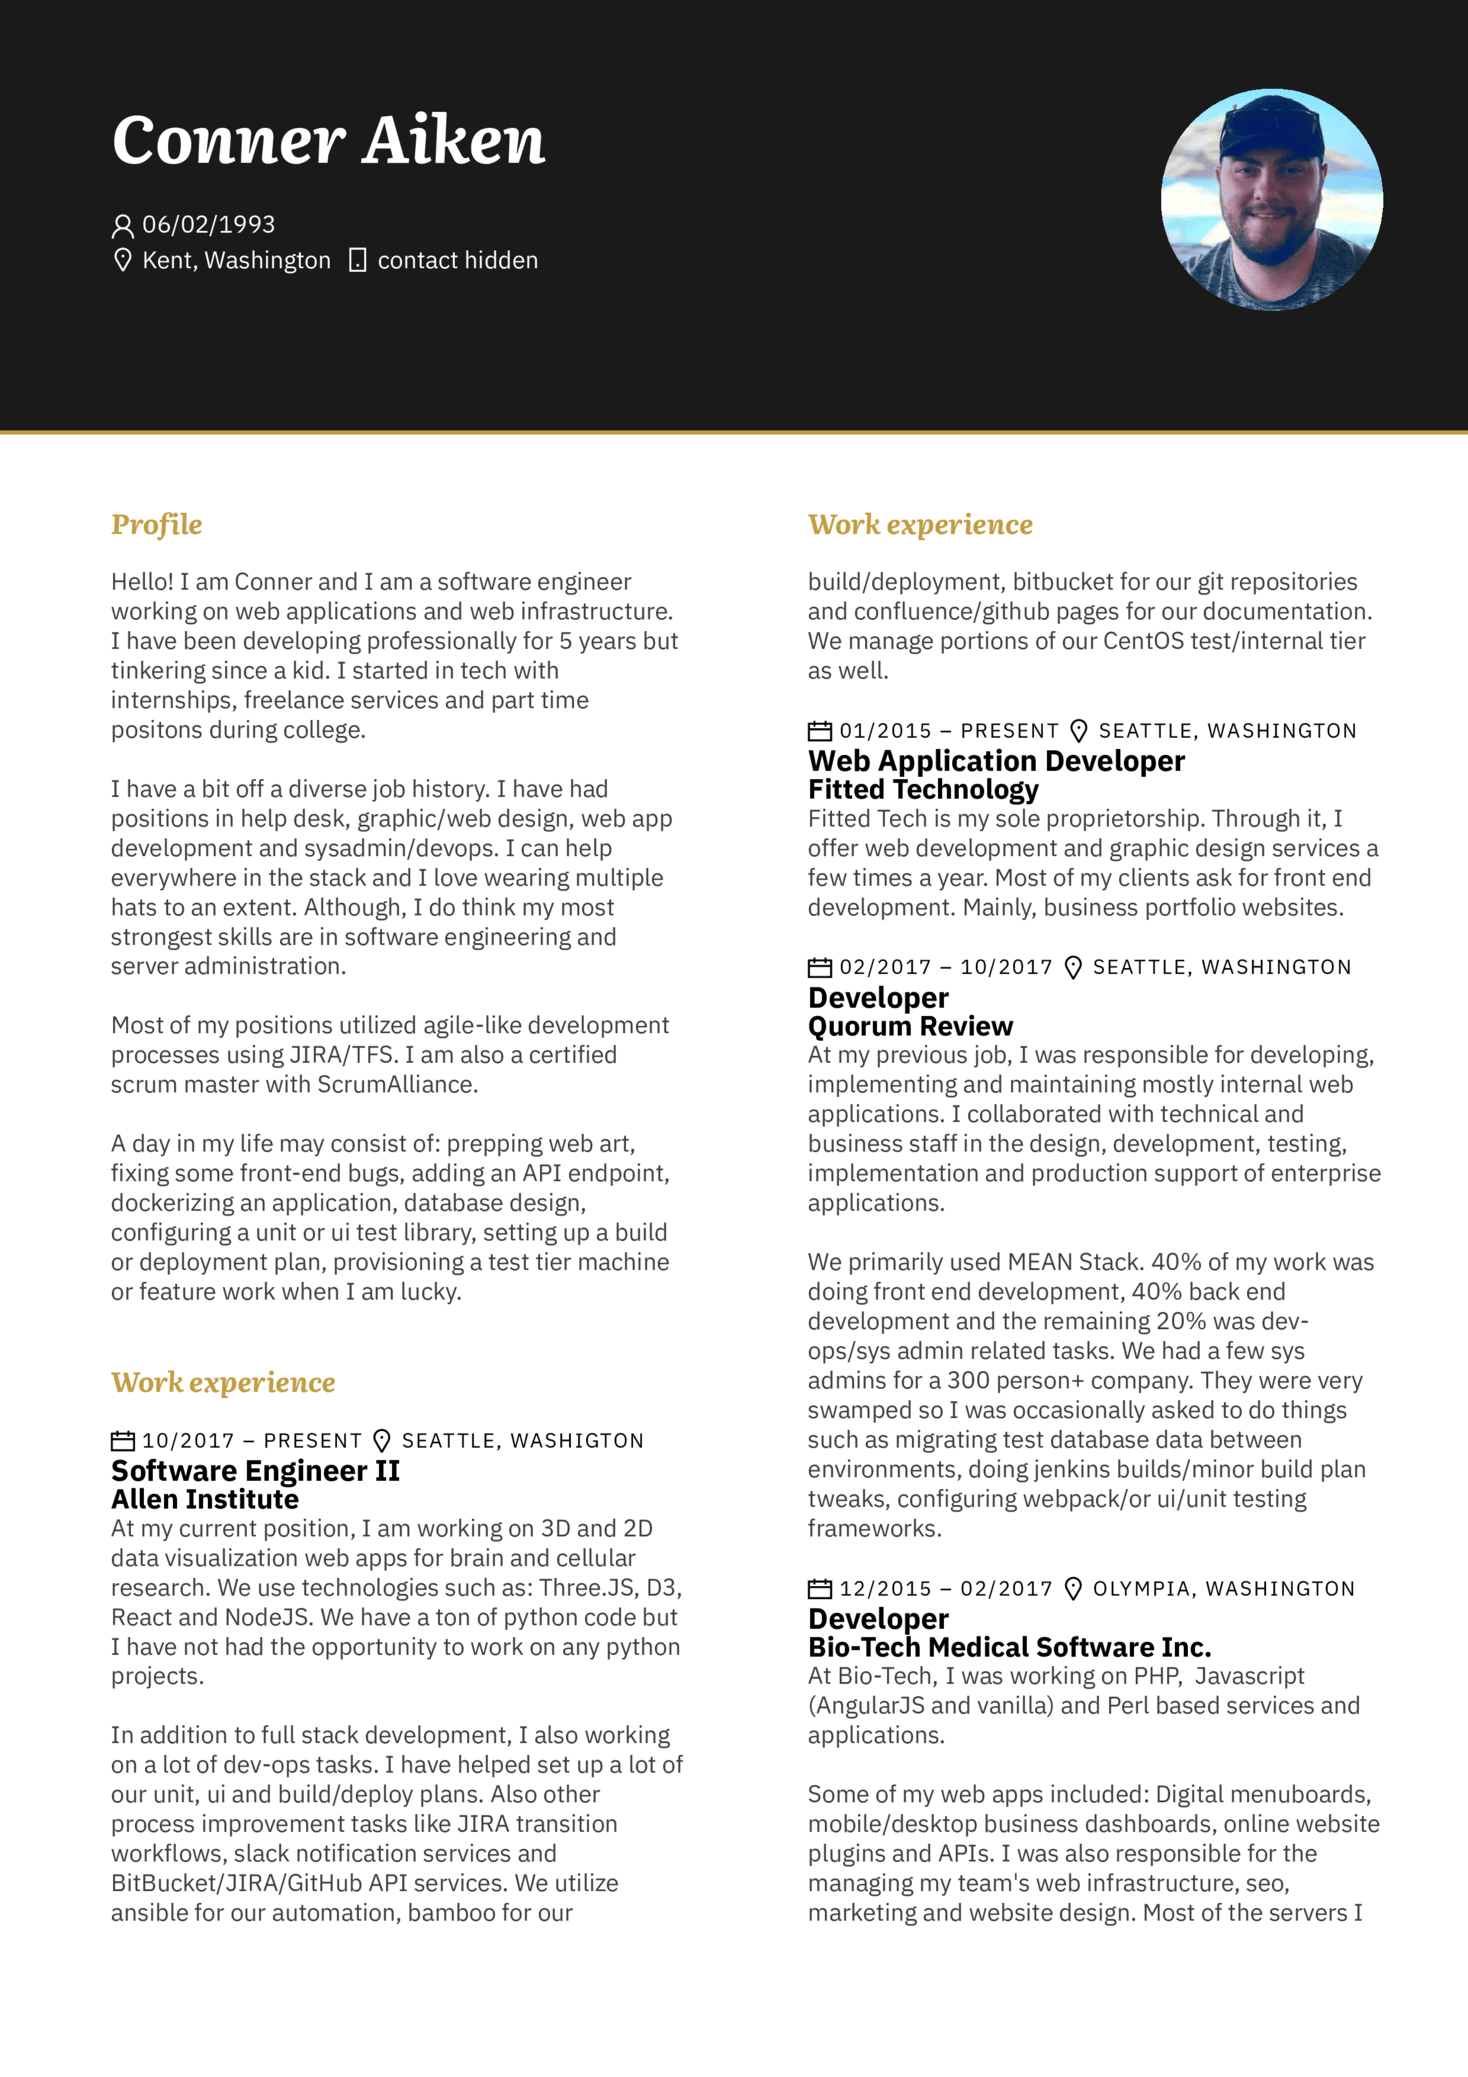 Software Engineer Resume Sample (Hired) (Part 1)